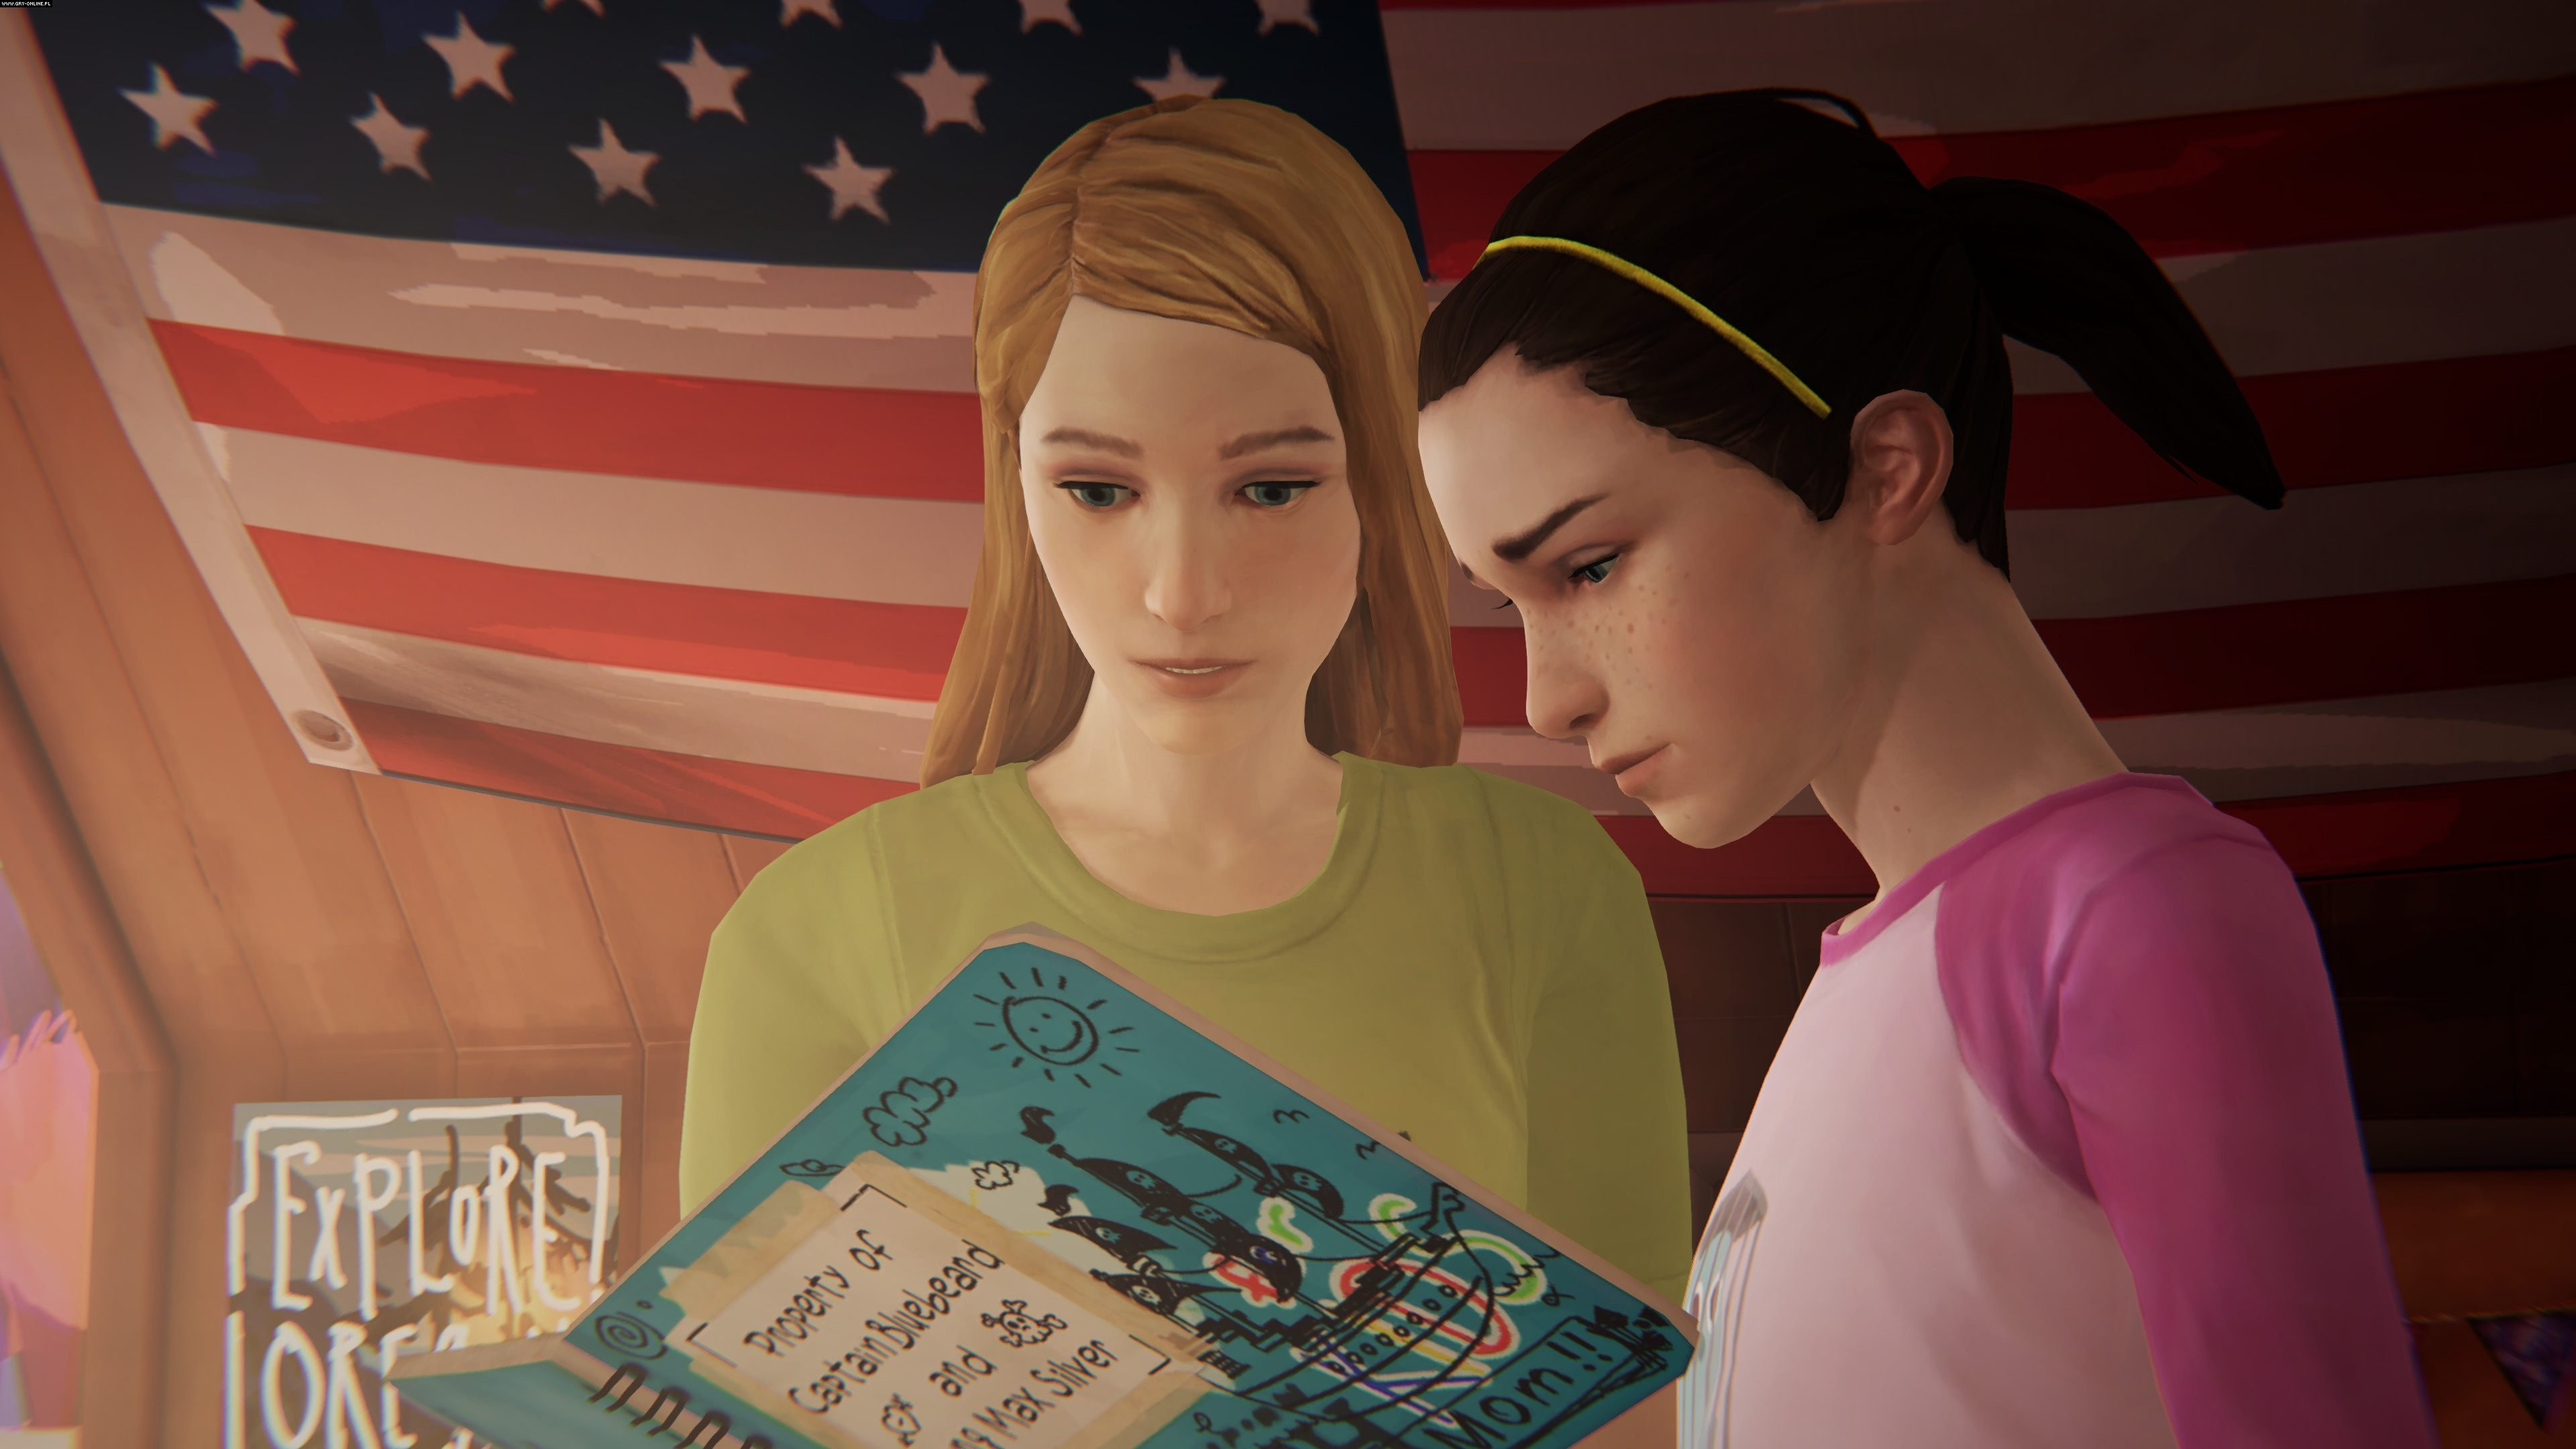 Life is Strange: Before the Storm PC, PS4, XONE Gry Screen 3/42, Deck Nine/Idol Minds, Square Enix